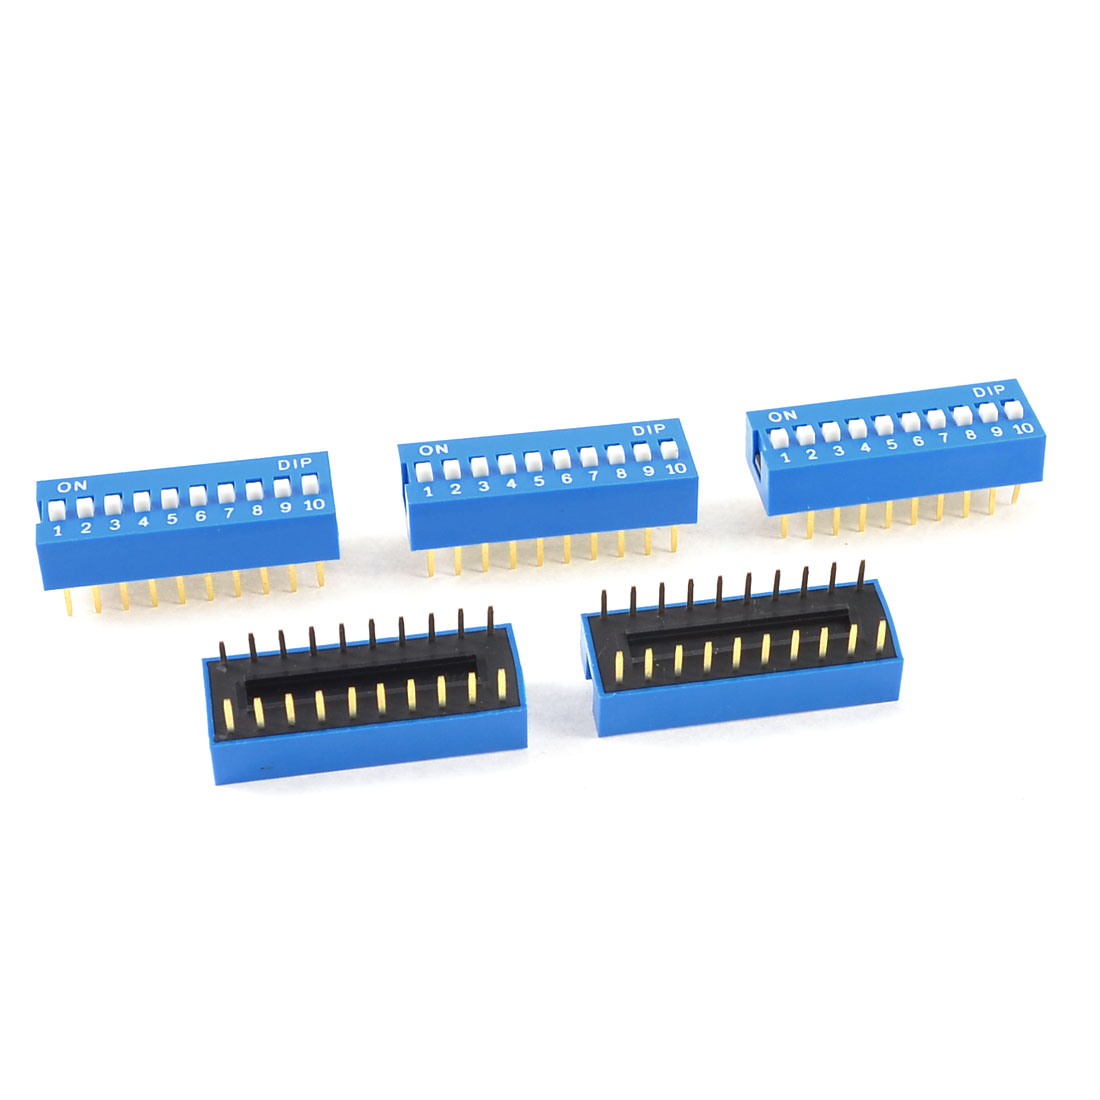 5 Pcs Blue Plastic Housing 10 Positions 2.54mm Pitch DIP Switches